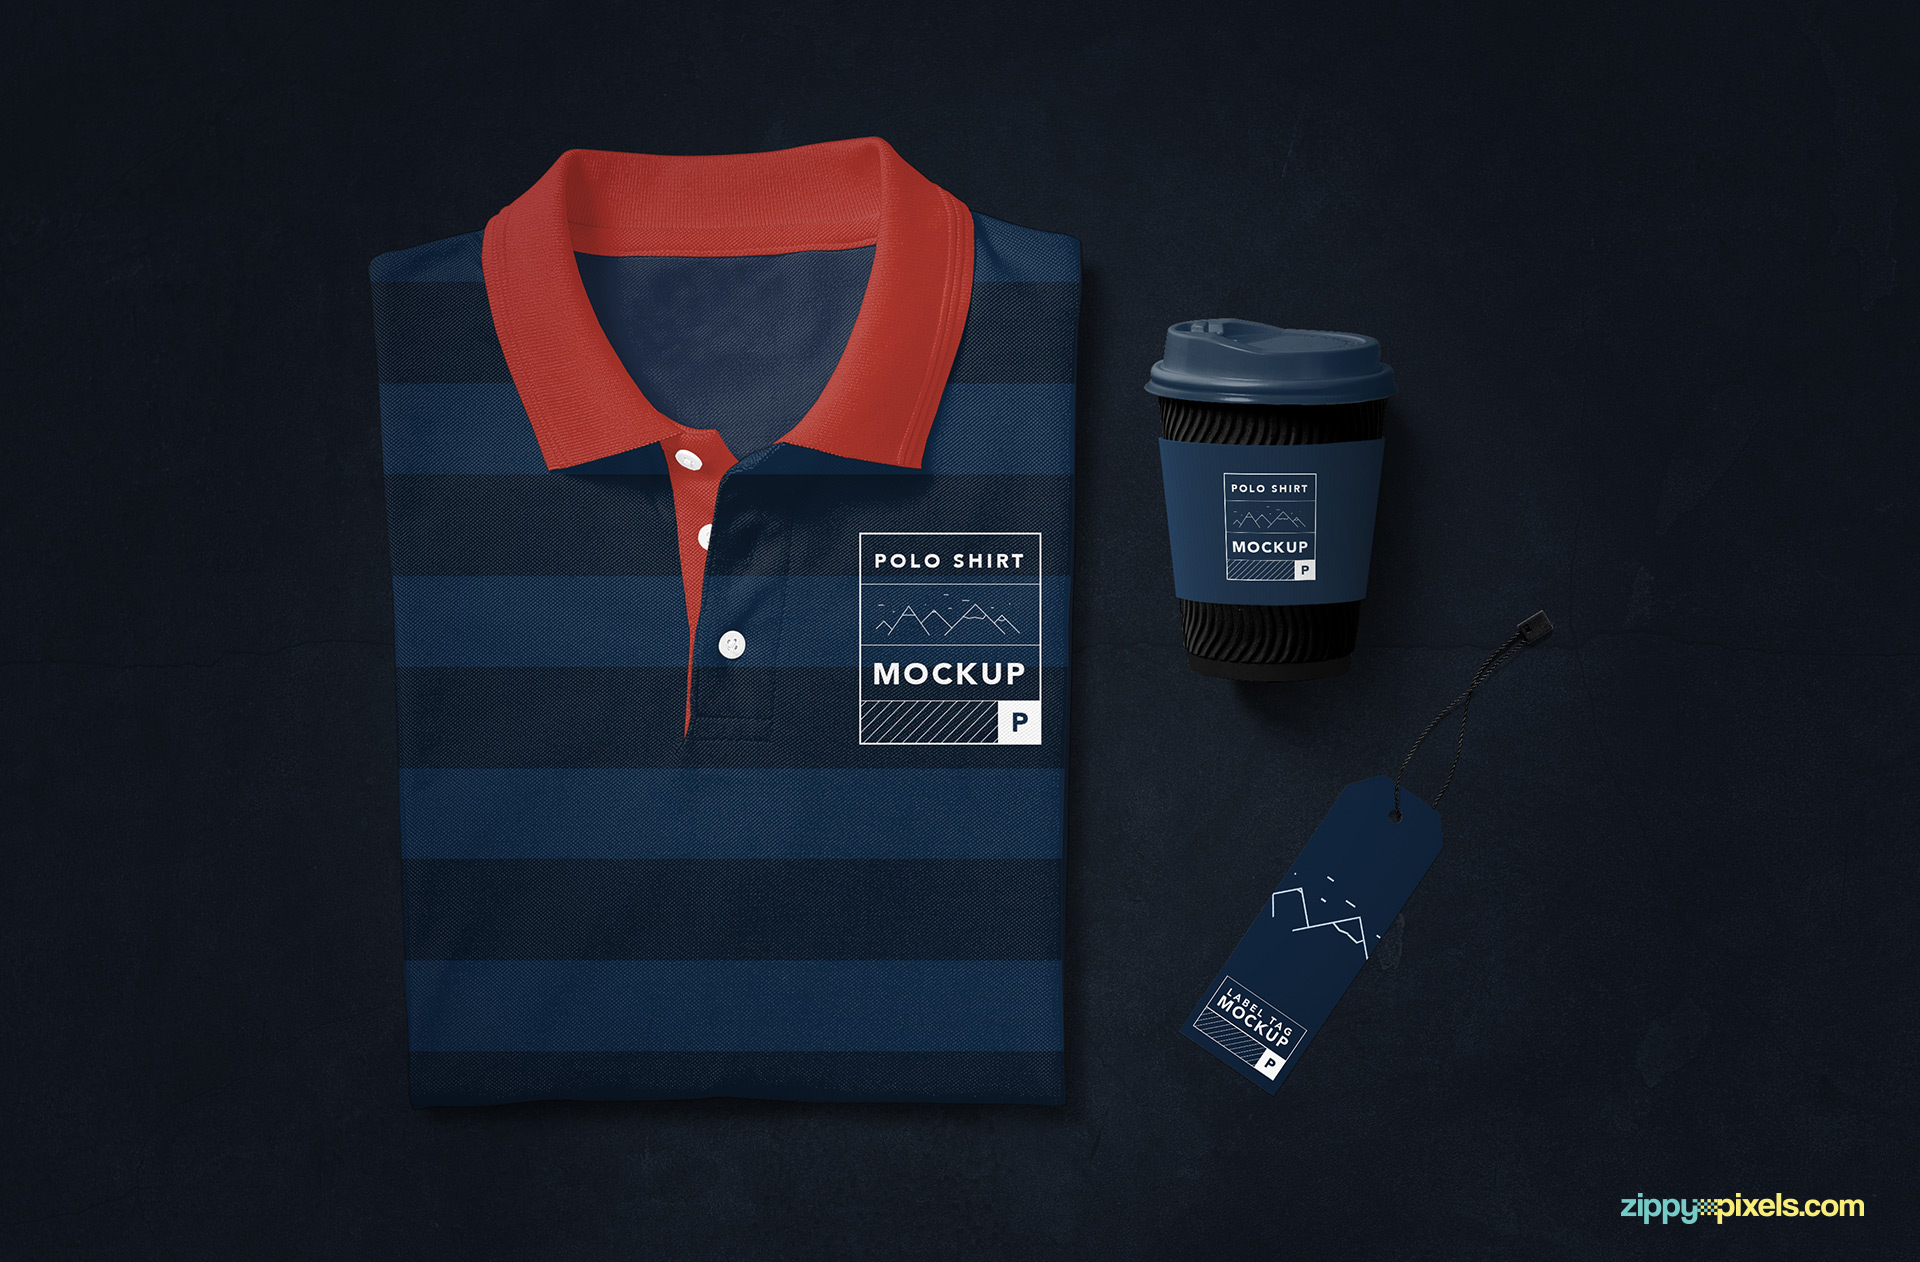 Polo shirt mockup with customizable coffee cup and label tag.